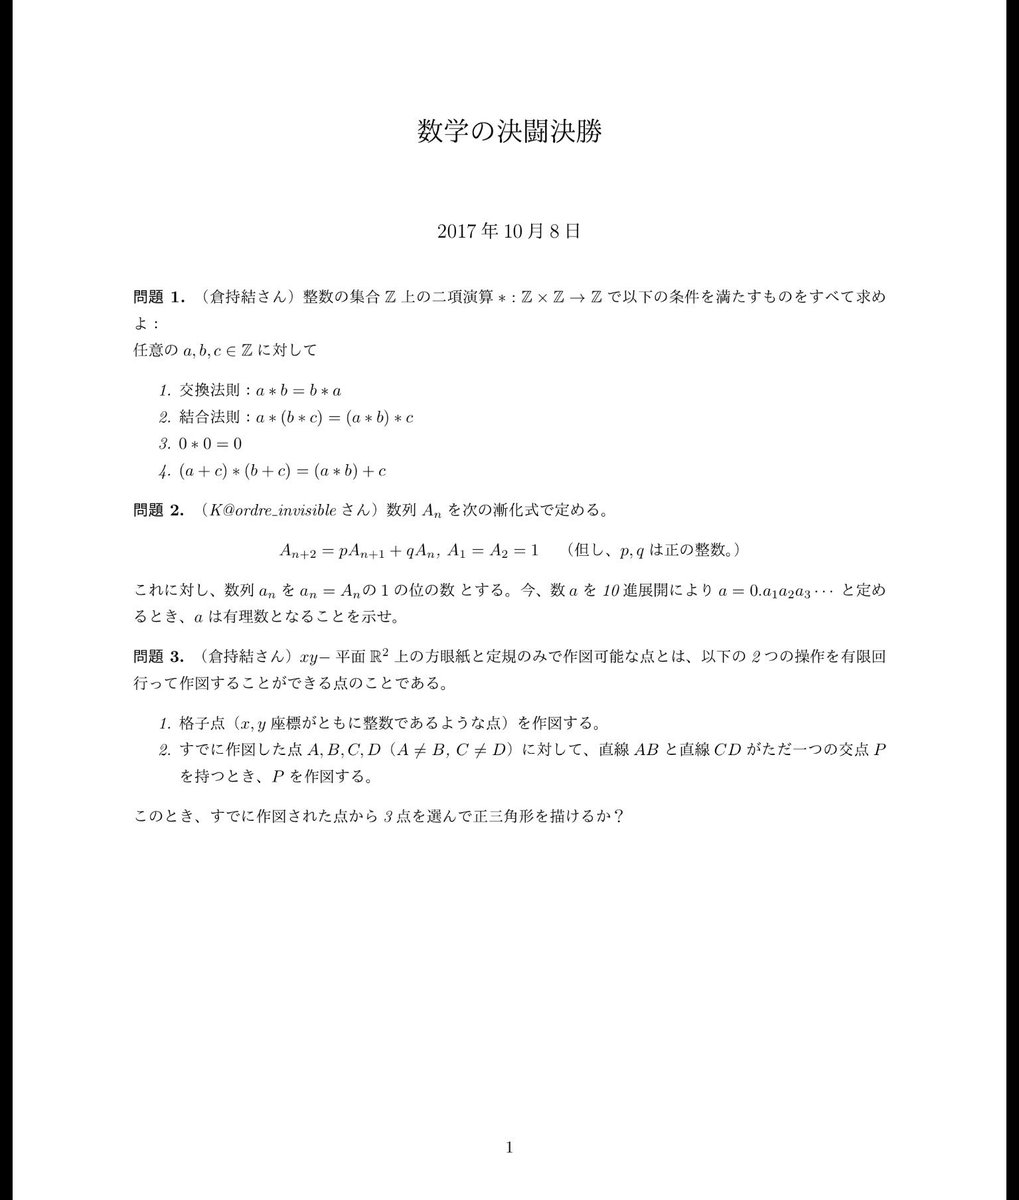 Category:ゼータ関数とL関数 (page 1) - JapaneseClass.jp